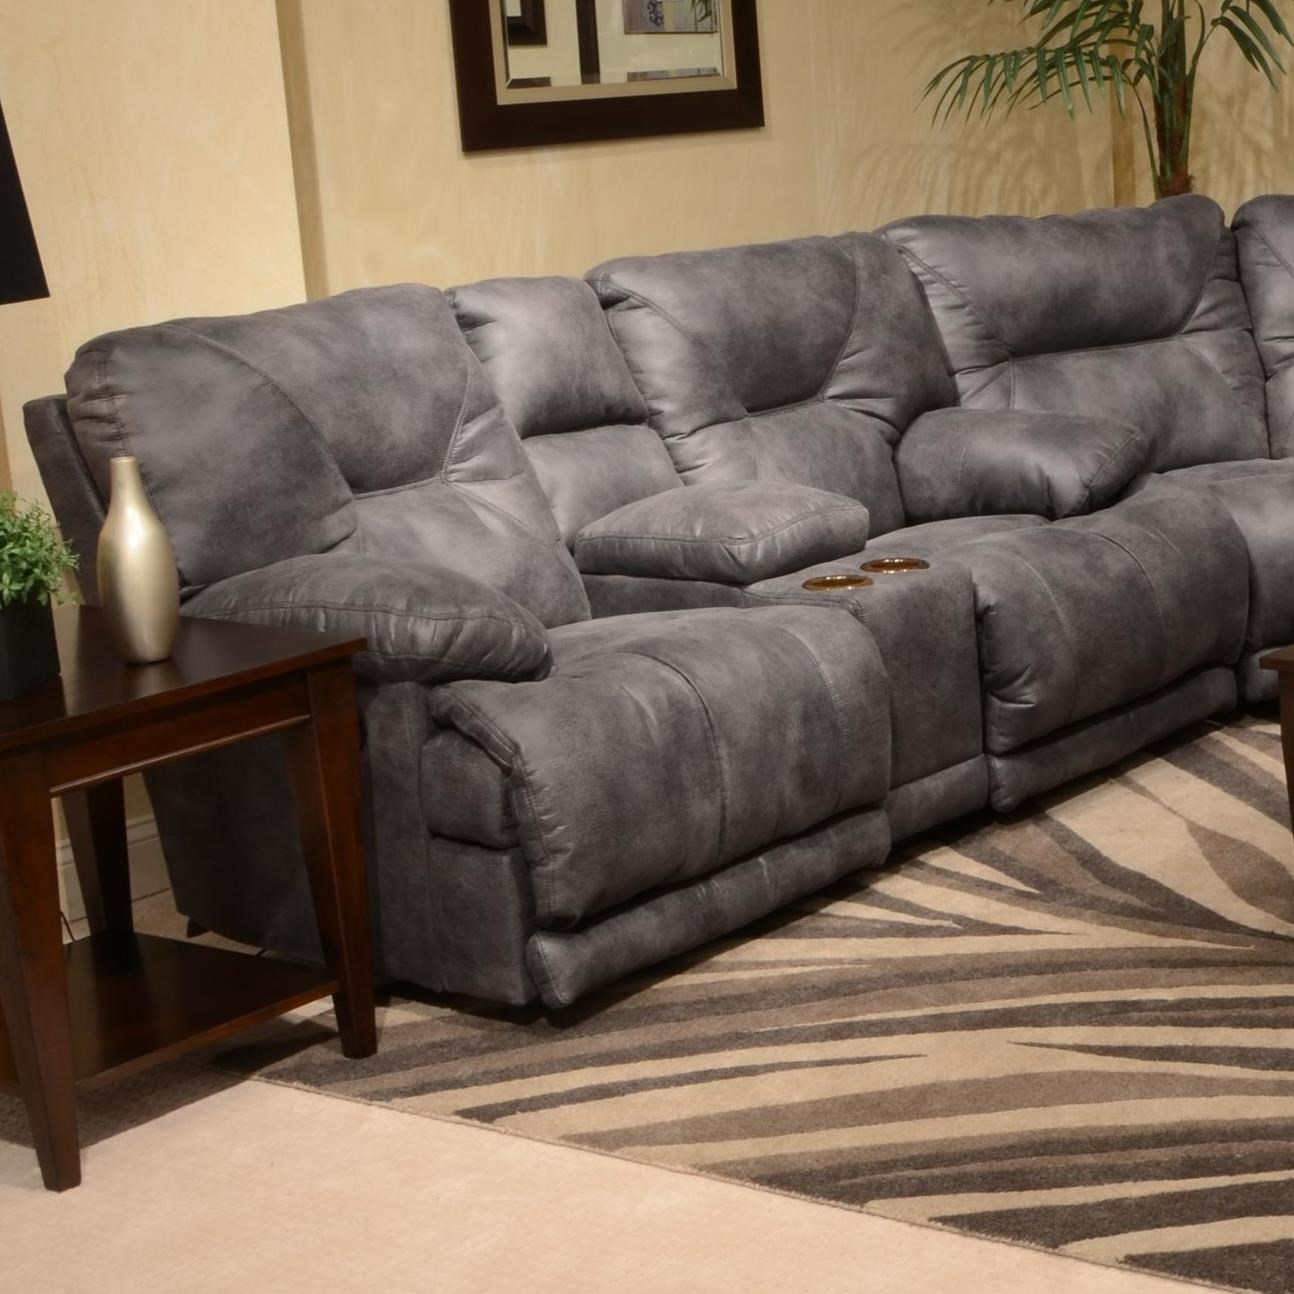 relax reclining jackson for sandy sectionals recli big loveseat catnapper in furniture room your carmine reviews leather sofa recliner living